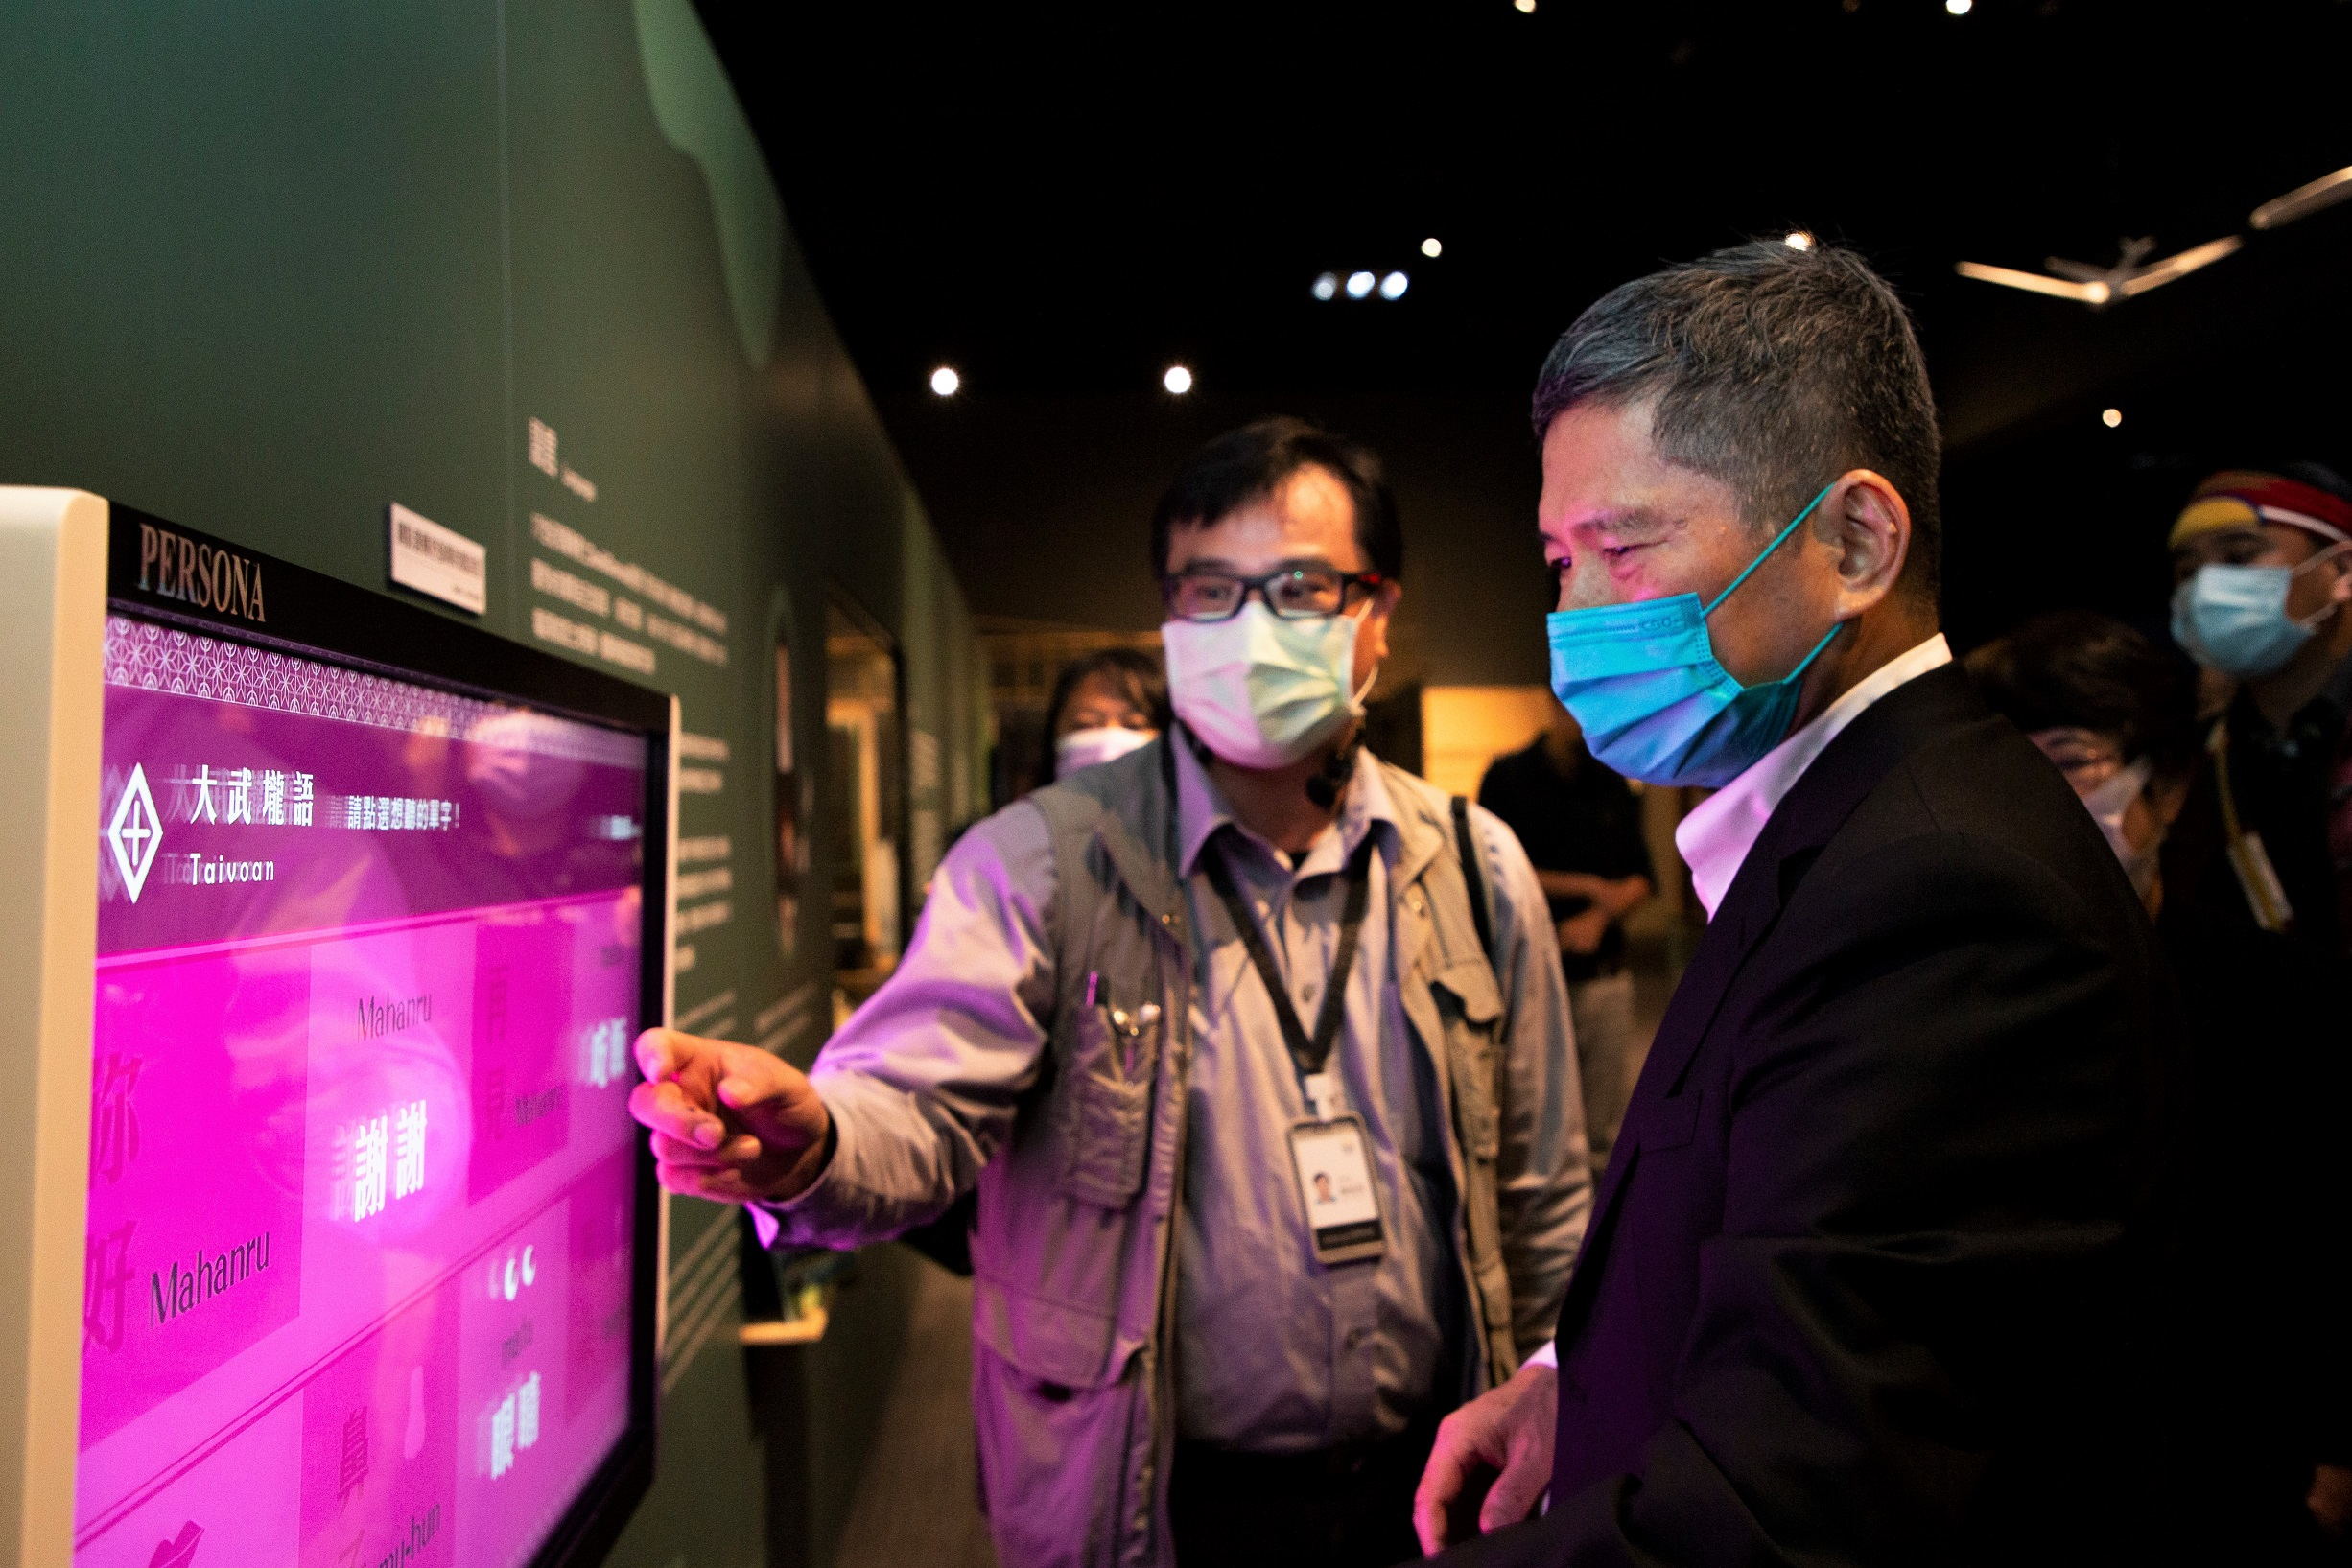 Exhibition showcasing revitalization of Pingpu tribal cultural heritage opens in Tainan